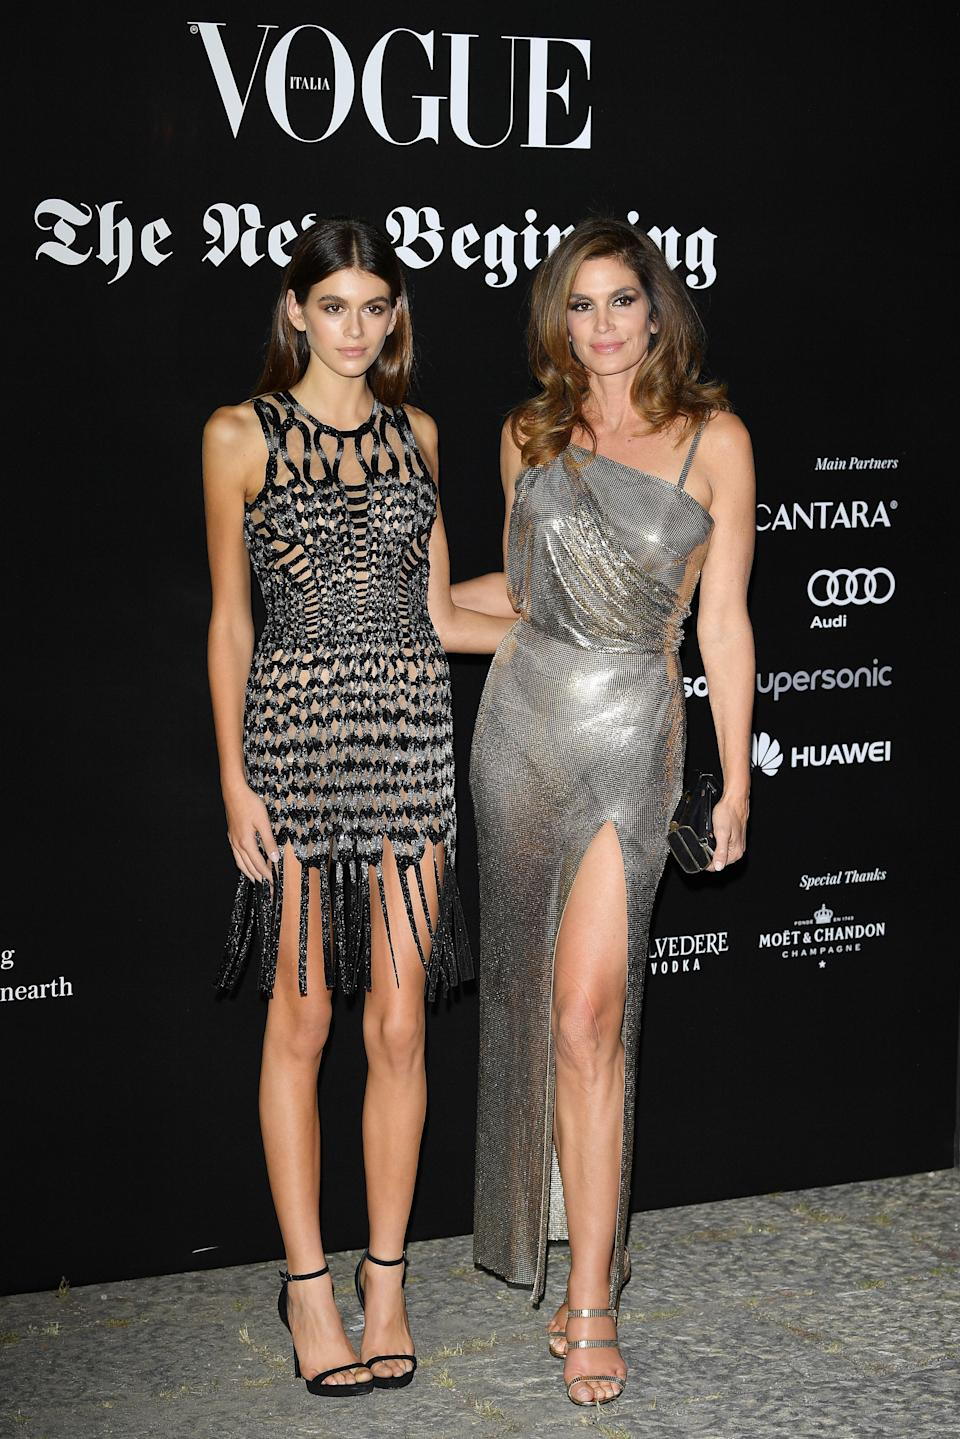 She matched in metallic with her mom for a fashion party during Milan Fashion Week.